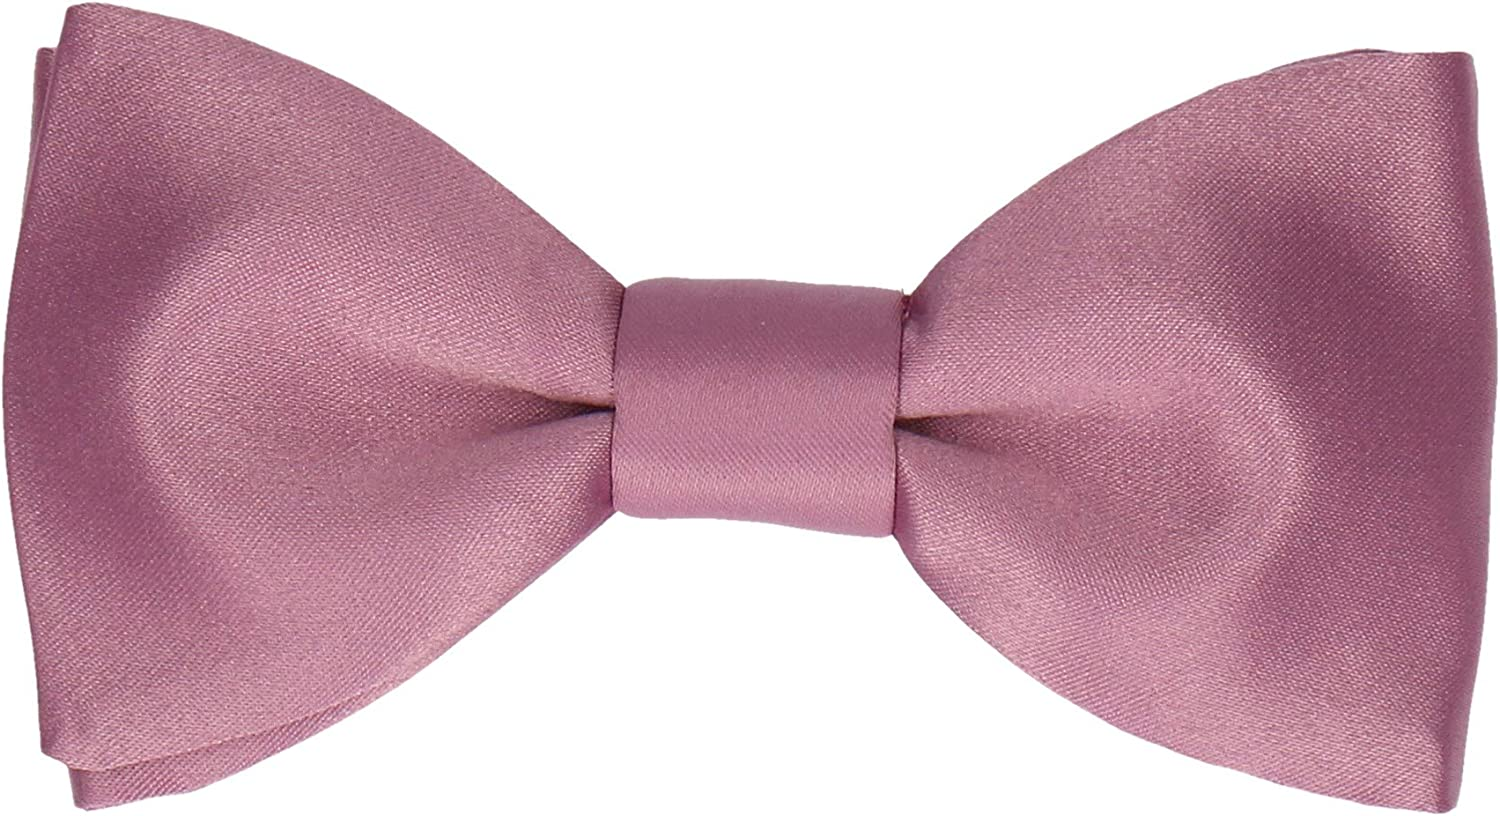 Burgundy Quantity limited Bow Tie - Who A Tribute Doctor 5 ☆ very popular